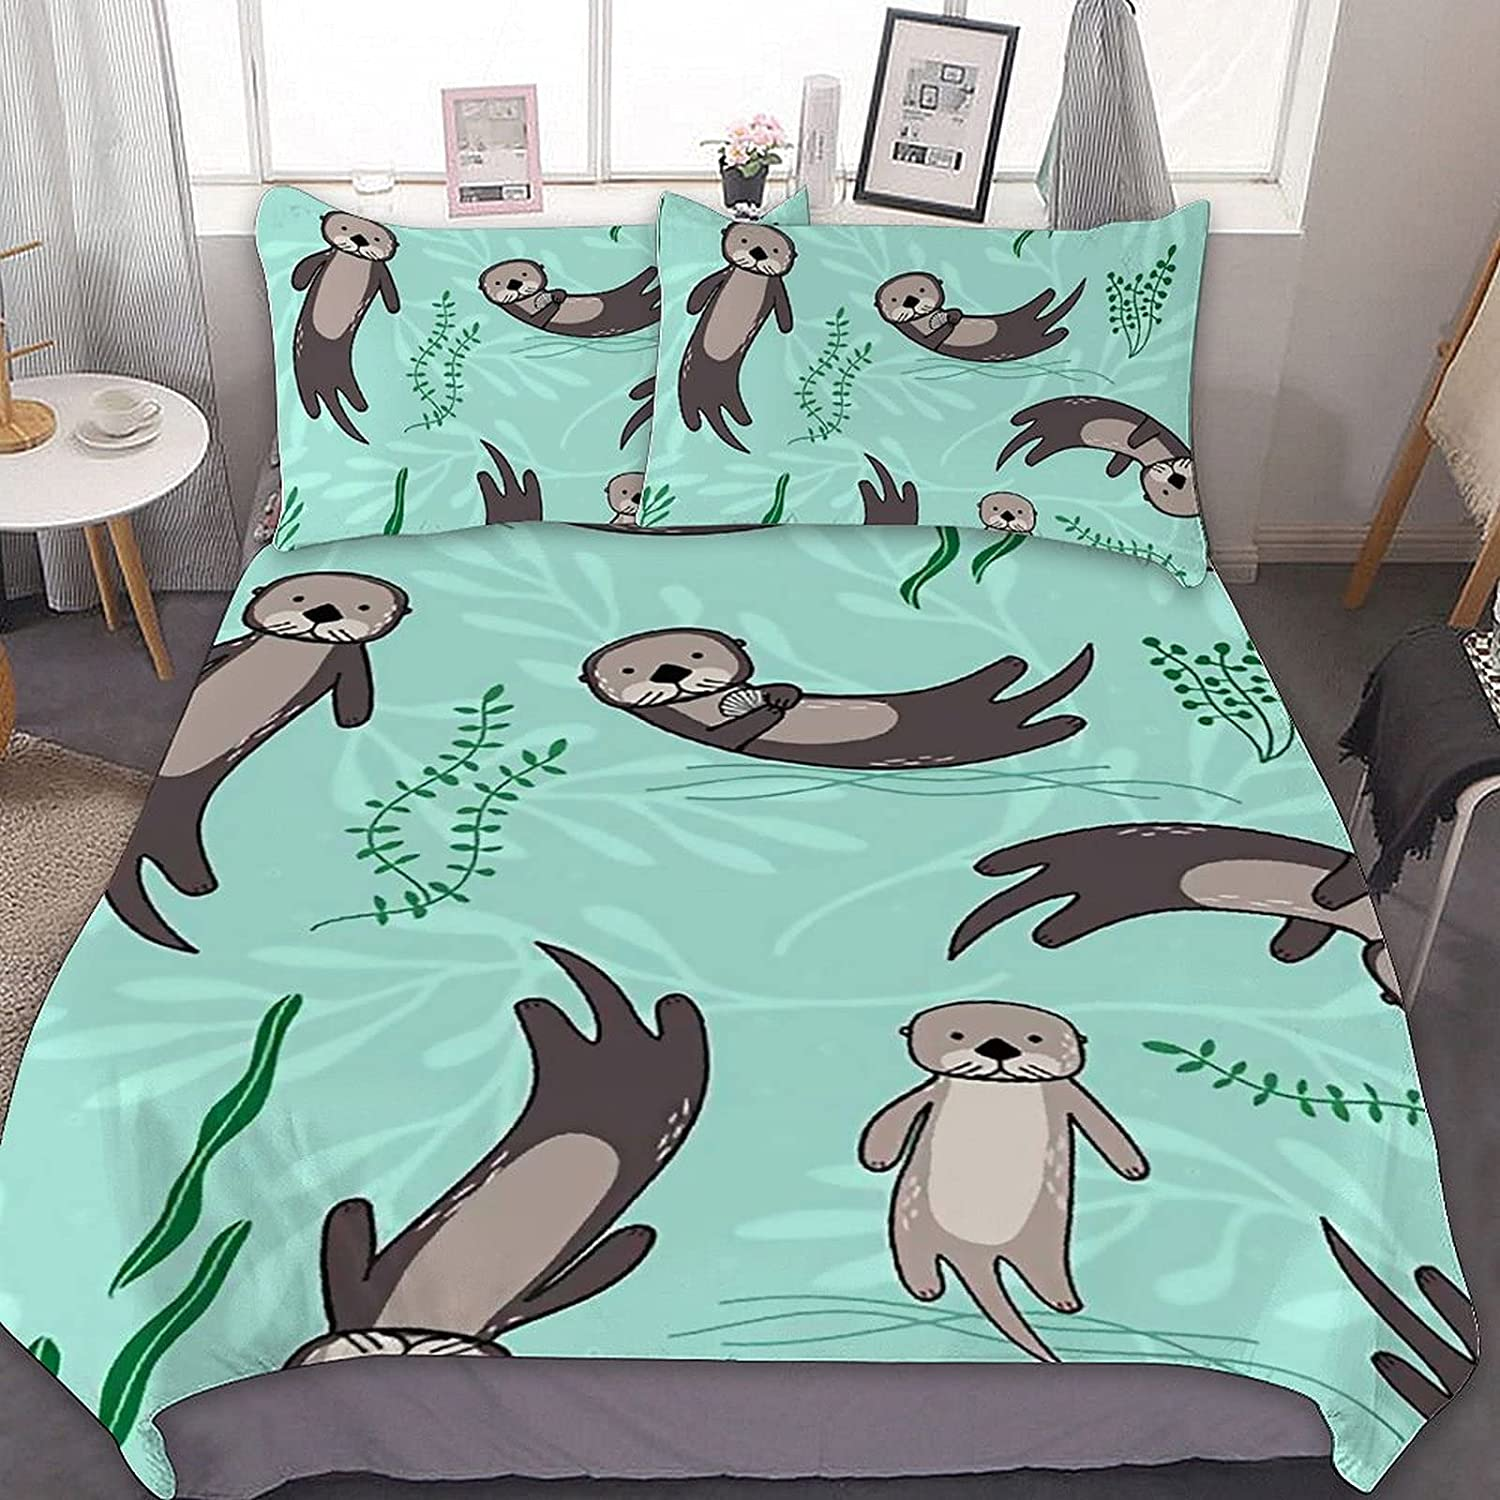 PNNUO Cute Sea Otters Queen Bed Set Size Over item handling Import Twin Comforte King Full